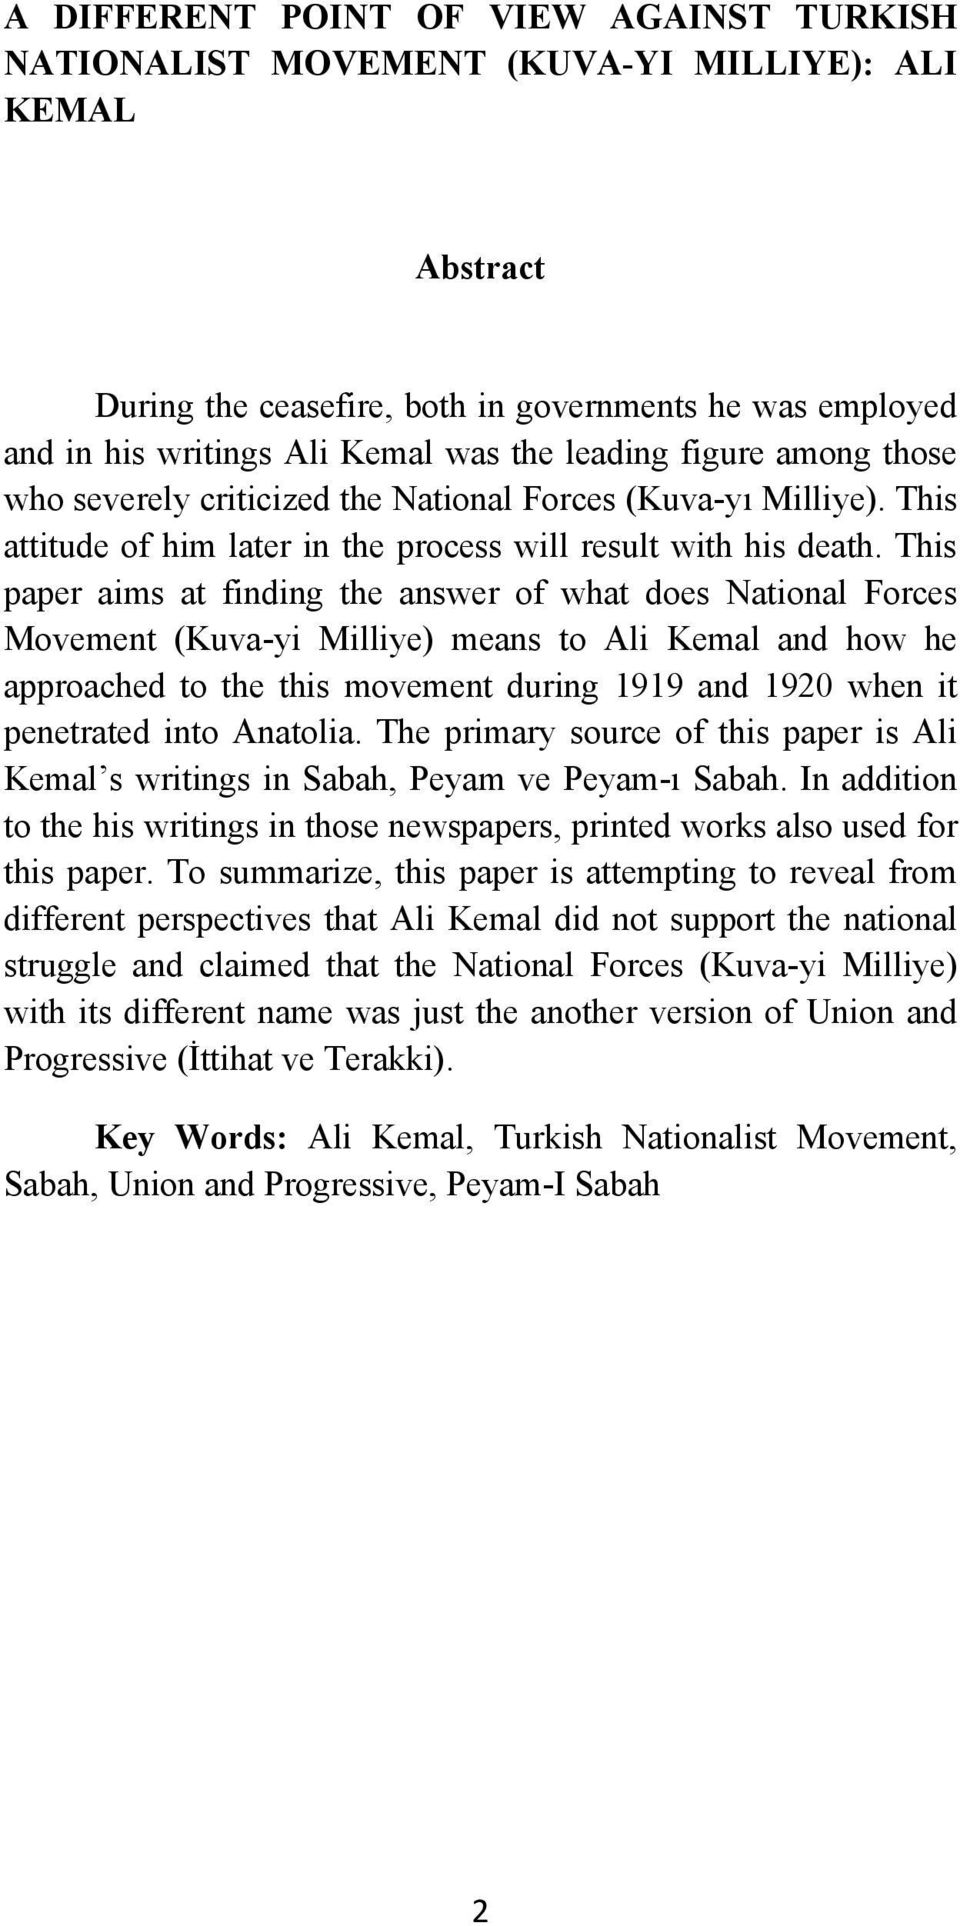 This paper aims at finding the answer of what does National Forces Movement (Kuva-yi Milliye) means to Ali Kemal and how he approached to the this movement during 1919 and 1920 when it penetrated